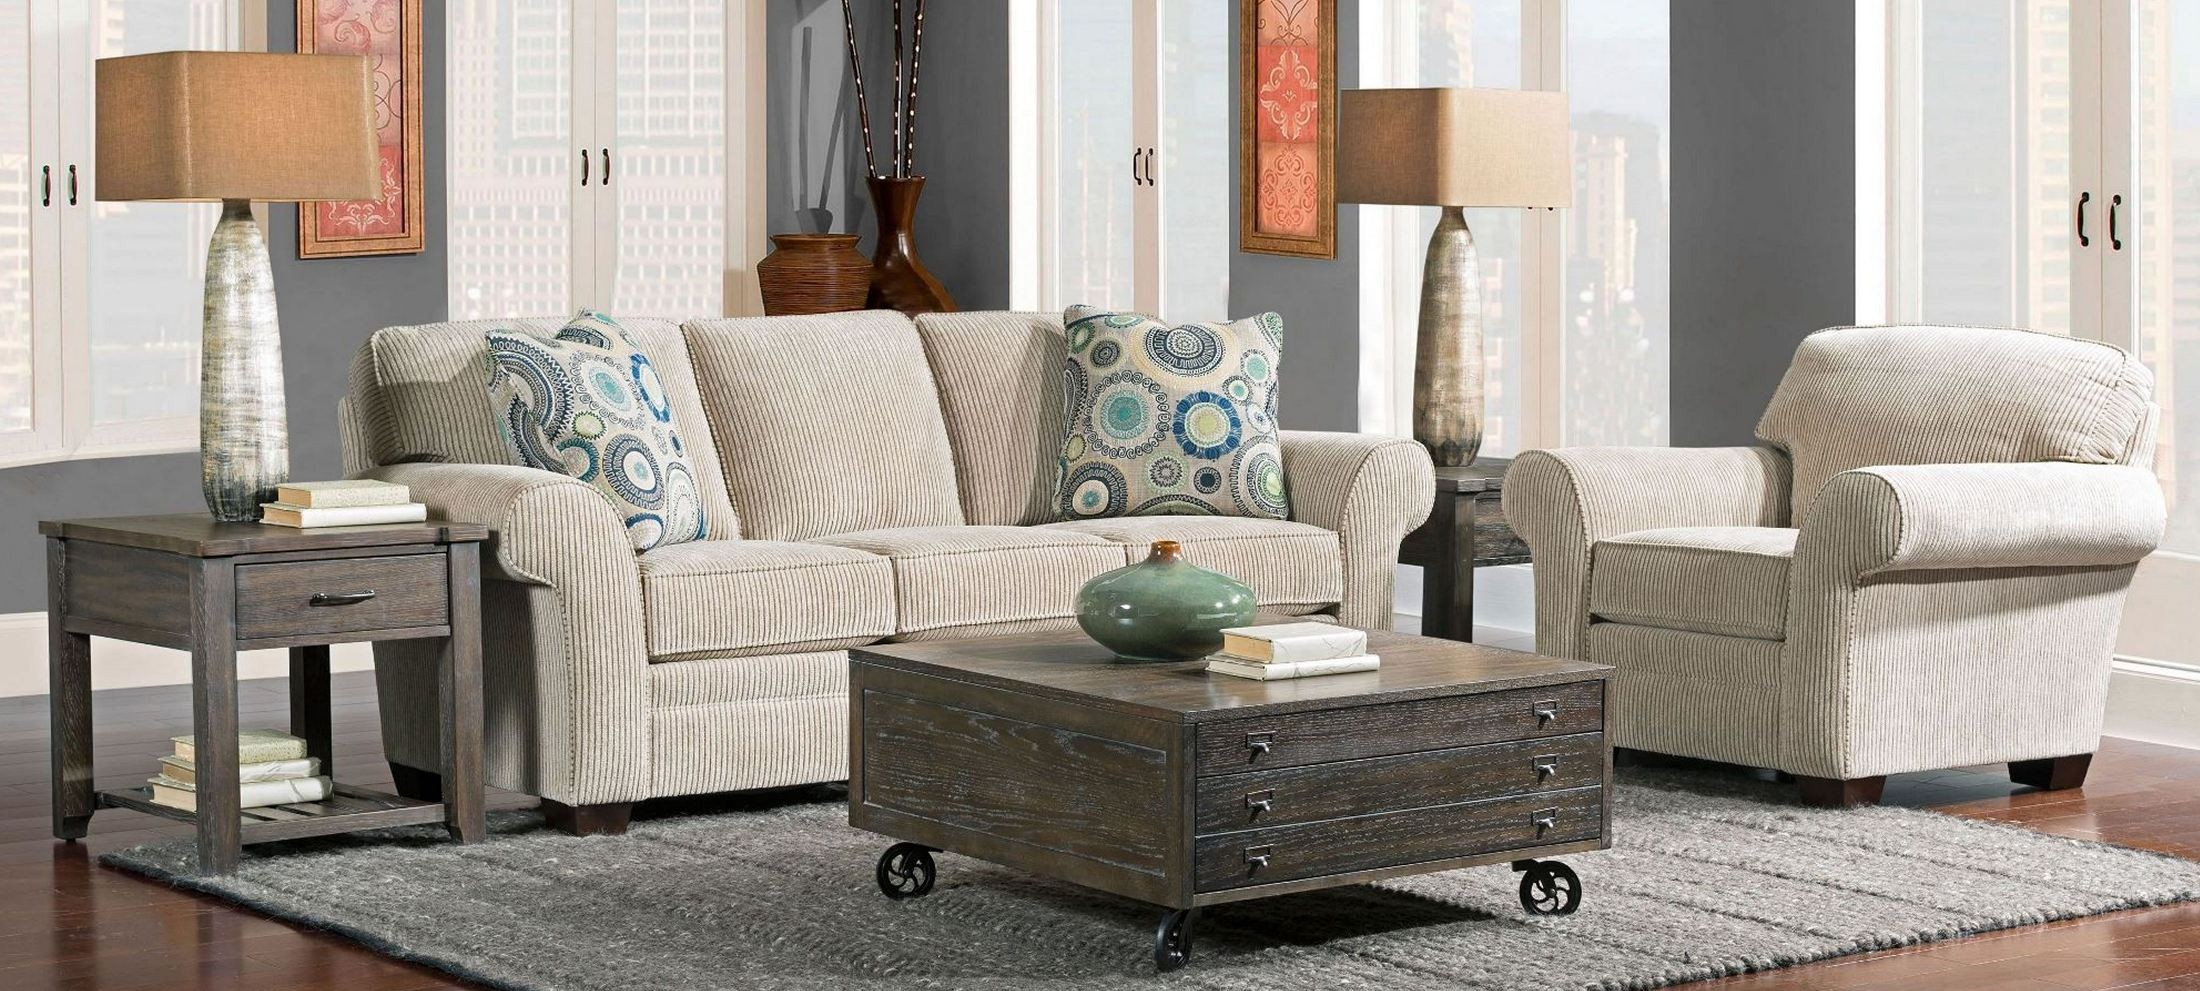 zachary affinity chenille fabric living room set from broyhill 7902